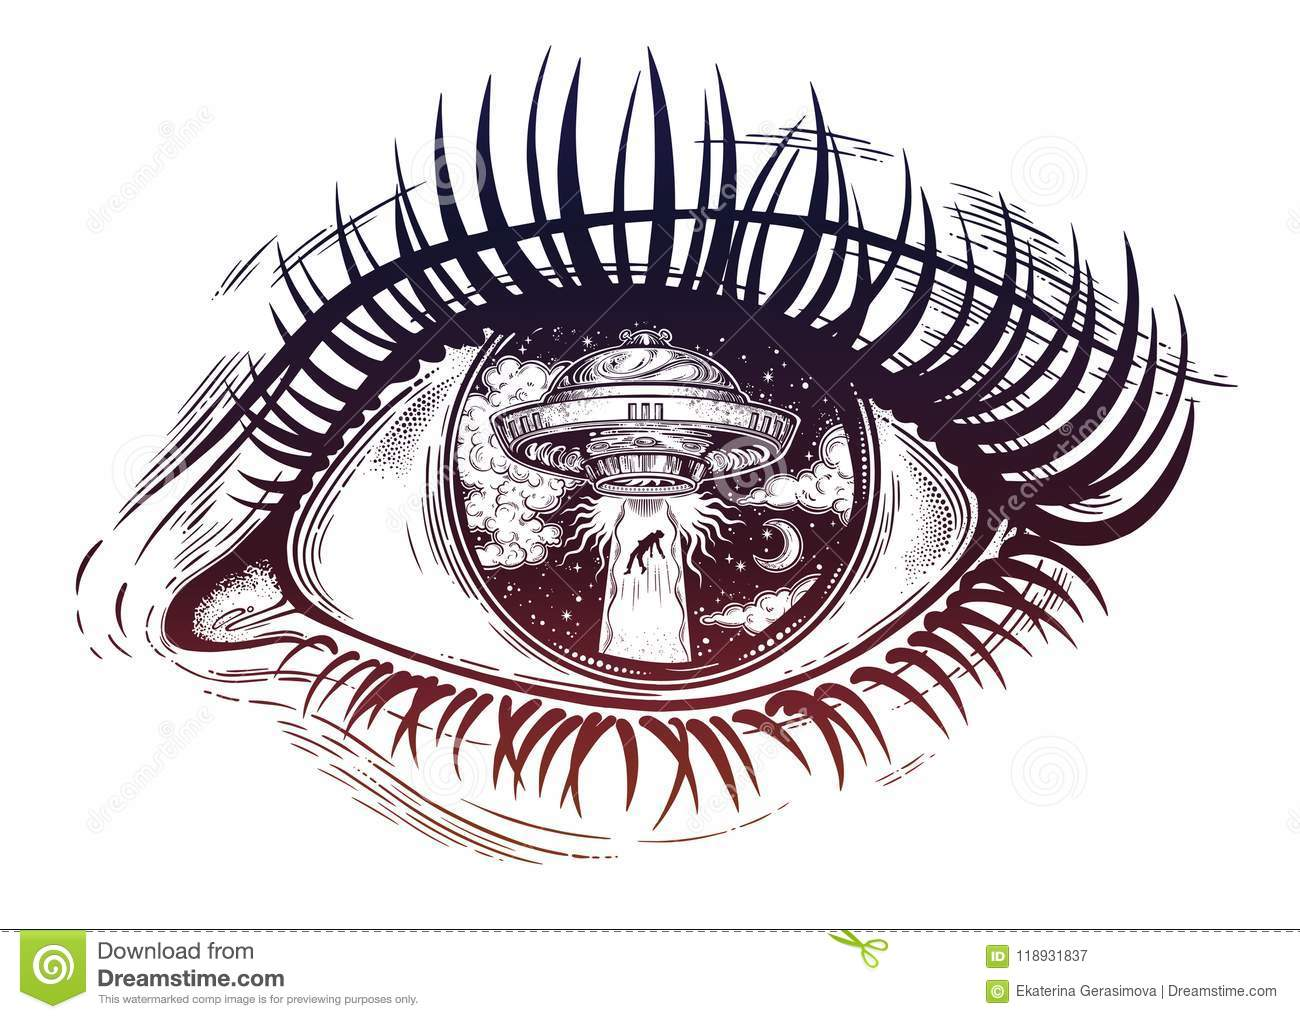 All Seeing Eye With Fantastic Alien Spaceship Ufo Abduction Of A Human With Flying Saucer Stock Vector Illustration Of Galaxy Alien 118931837